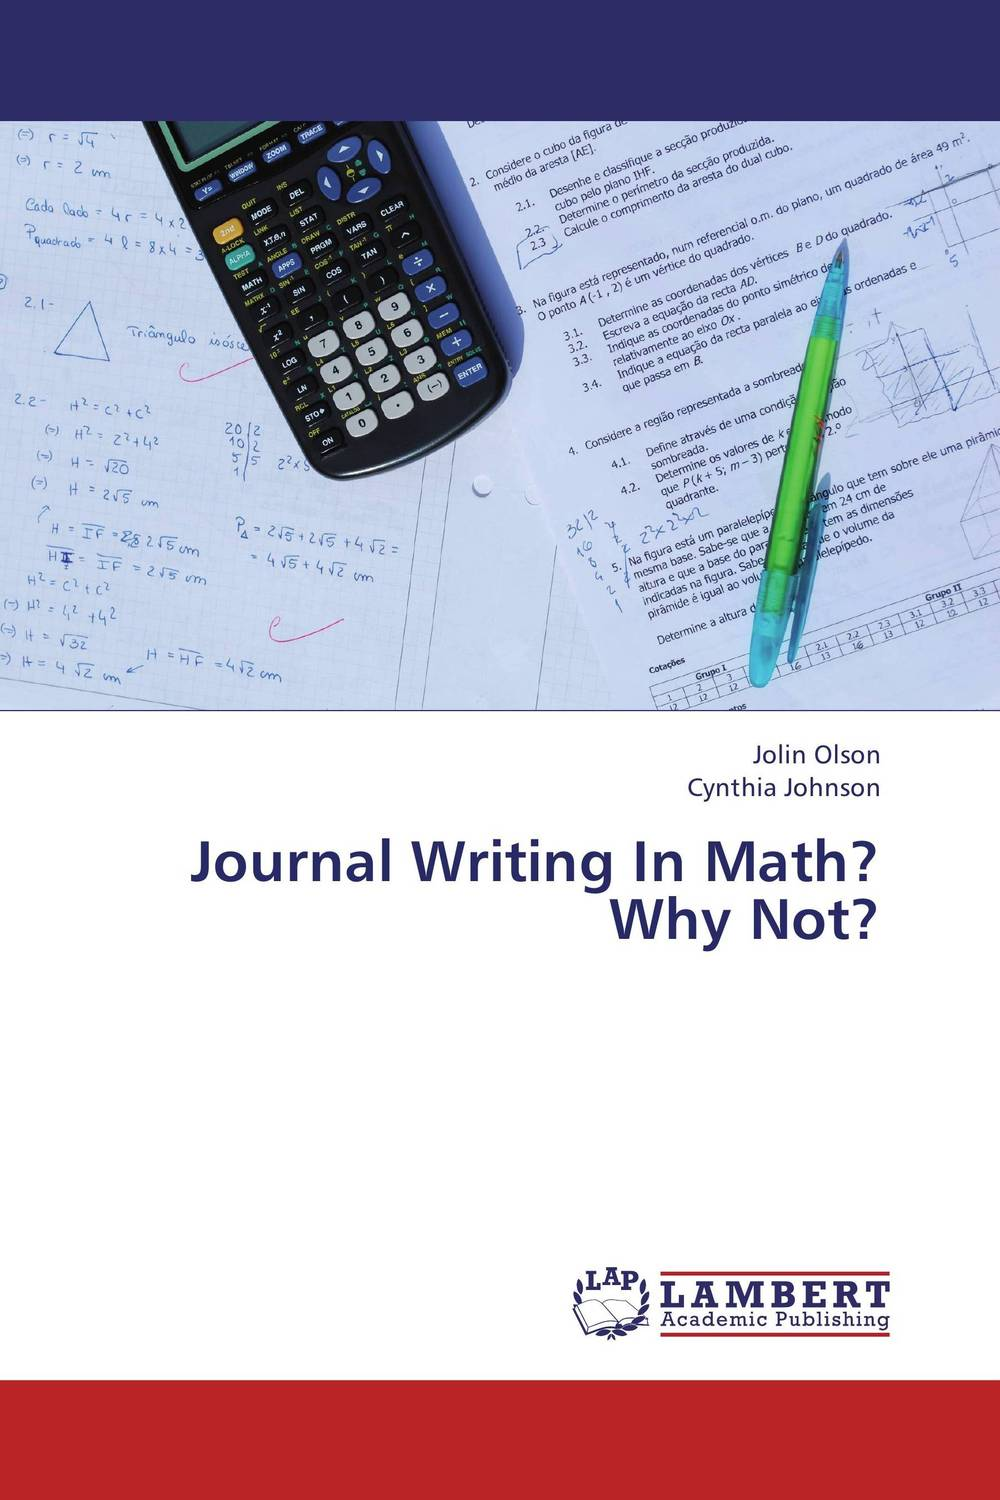 Journal Writing In Math? Why Not?